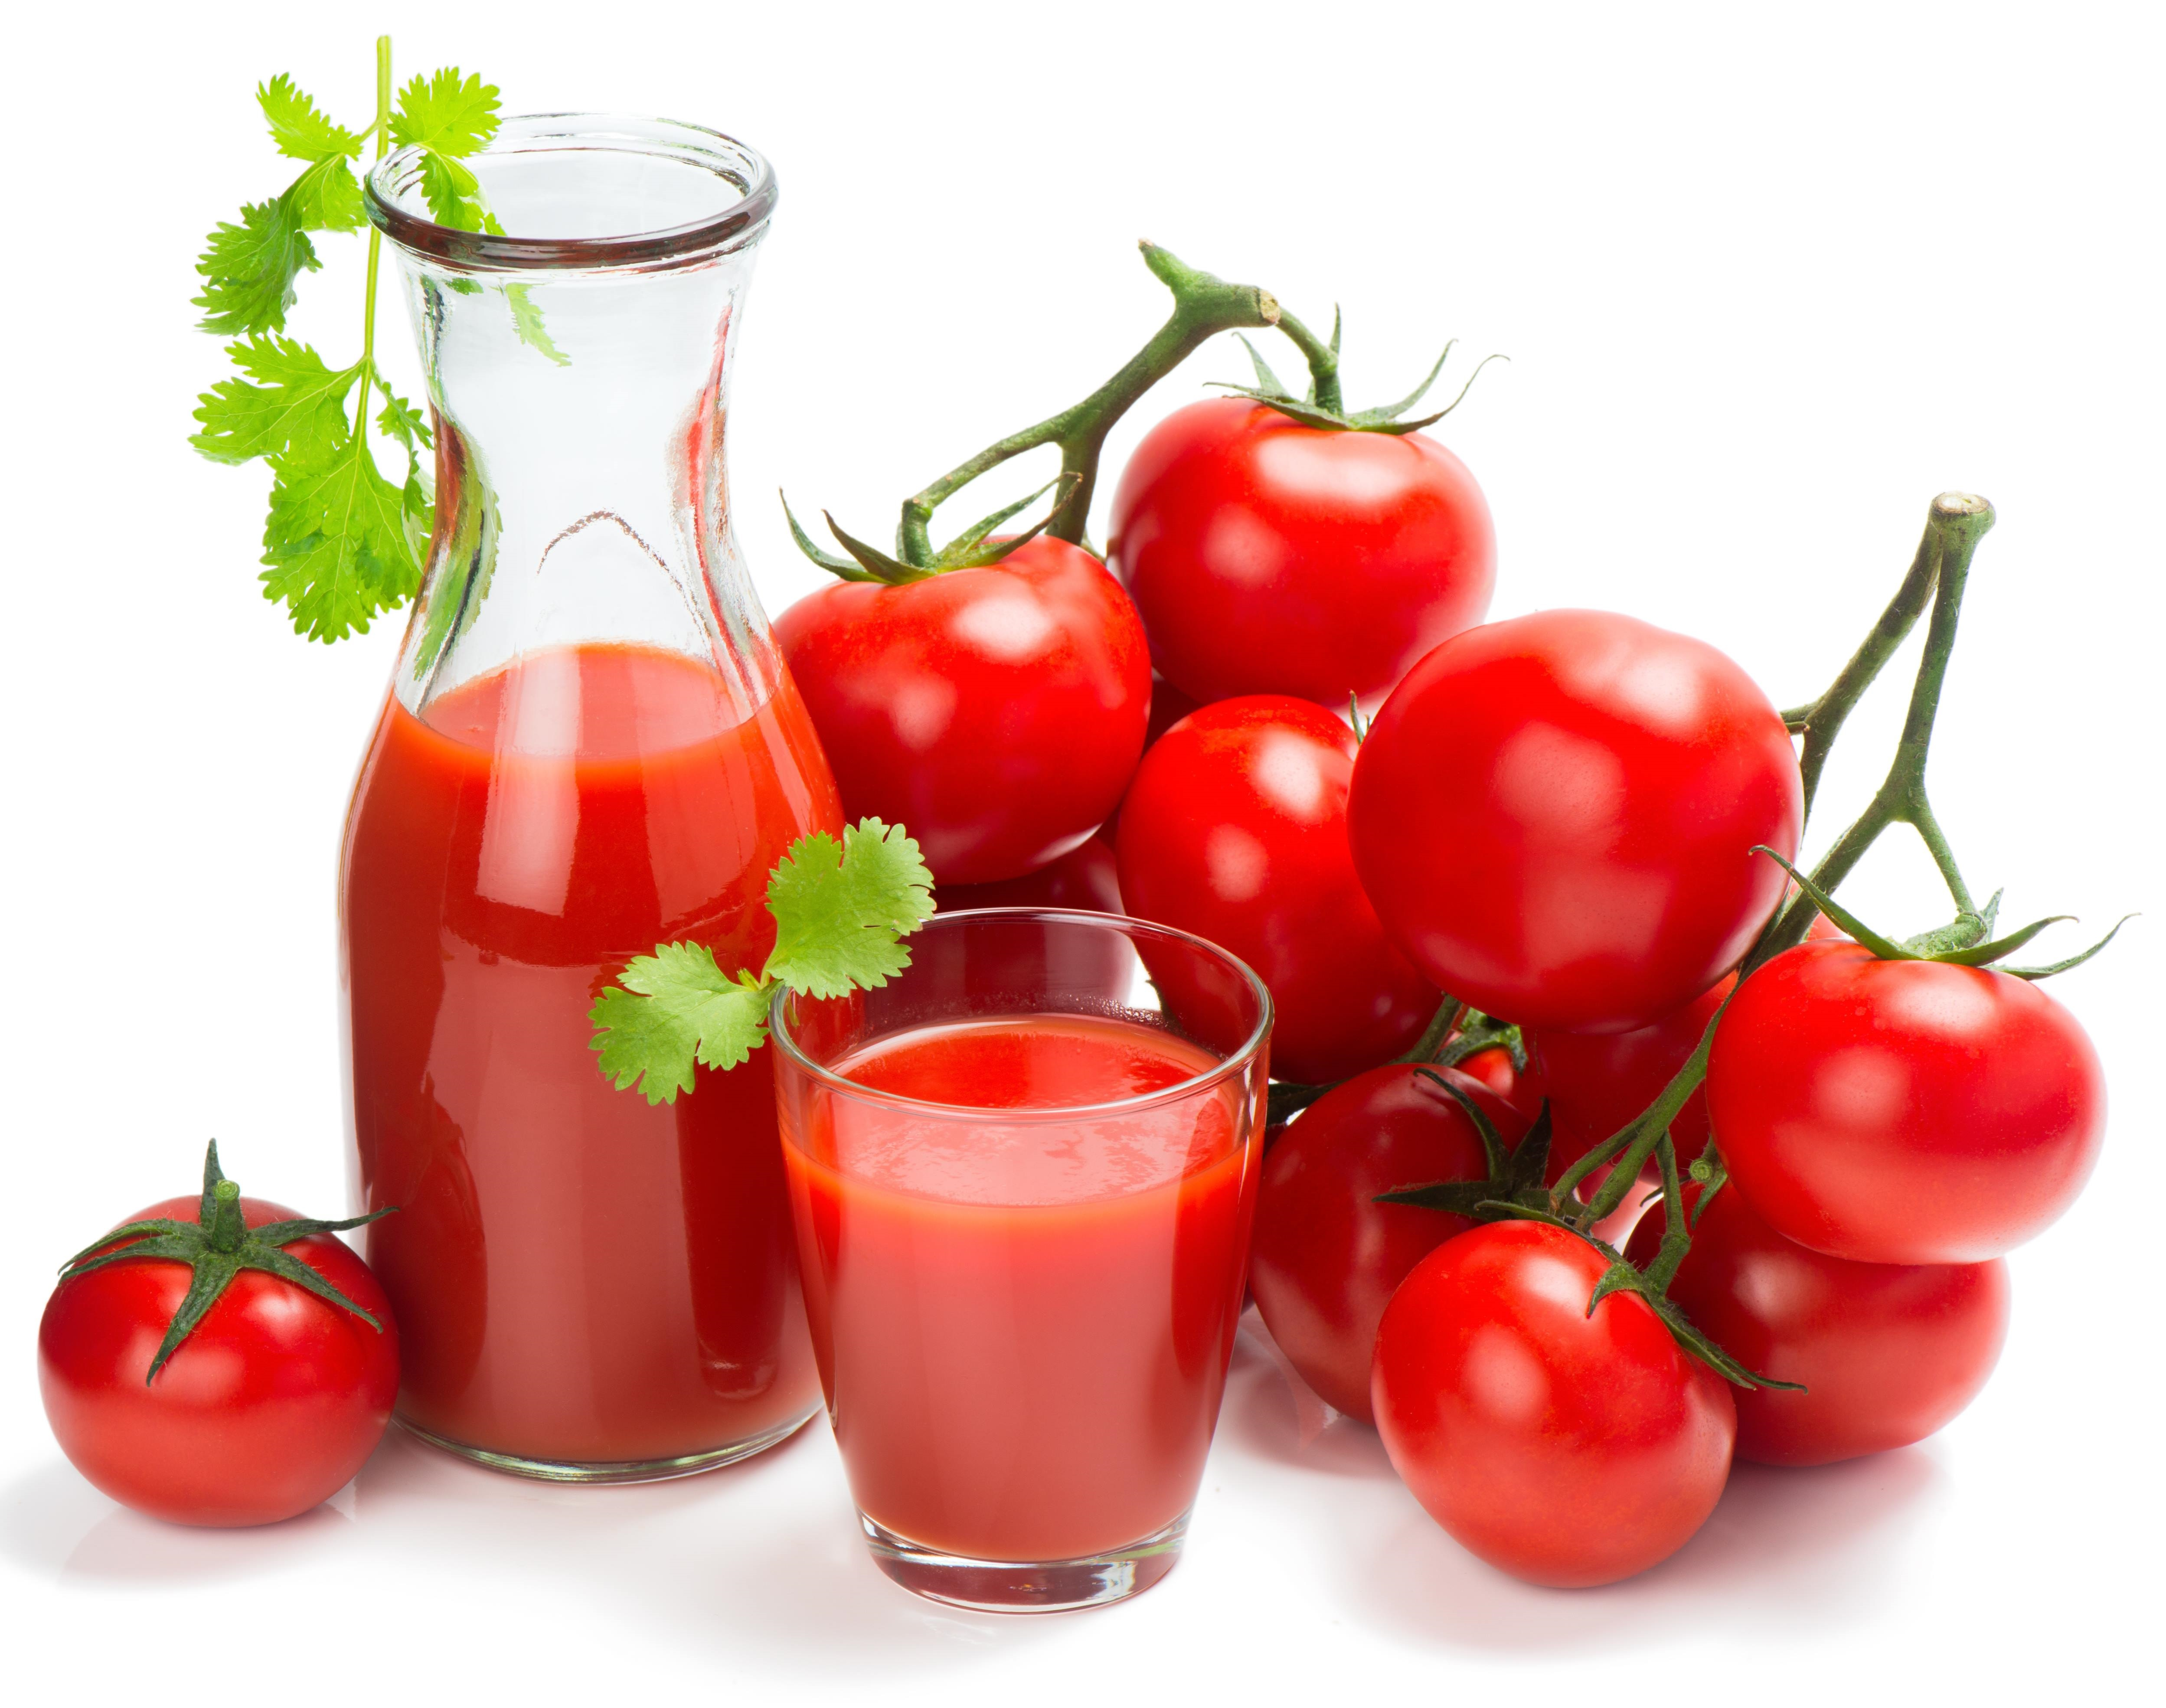 how to make tomato juice from tomato paste